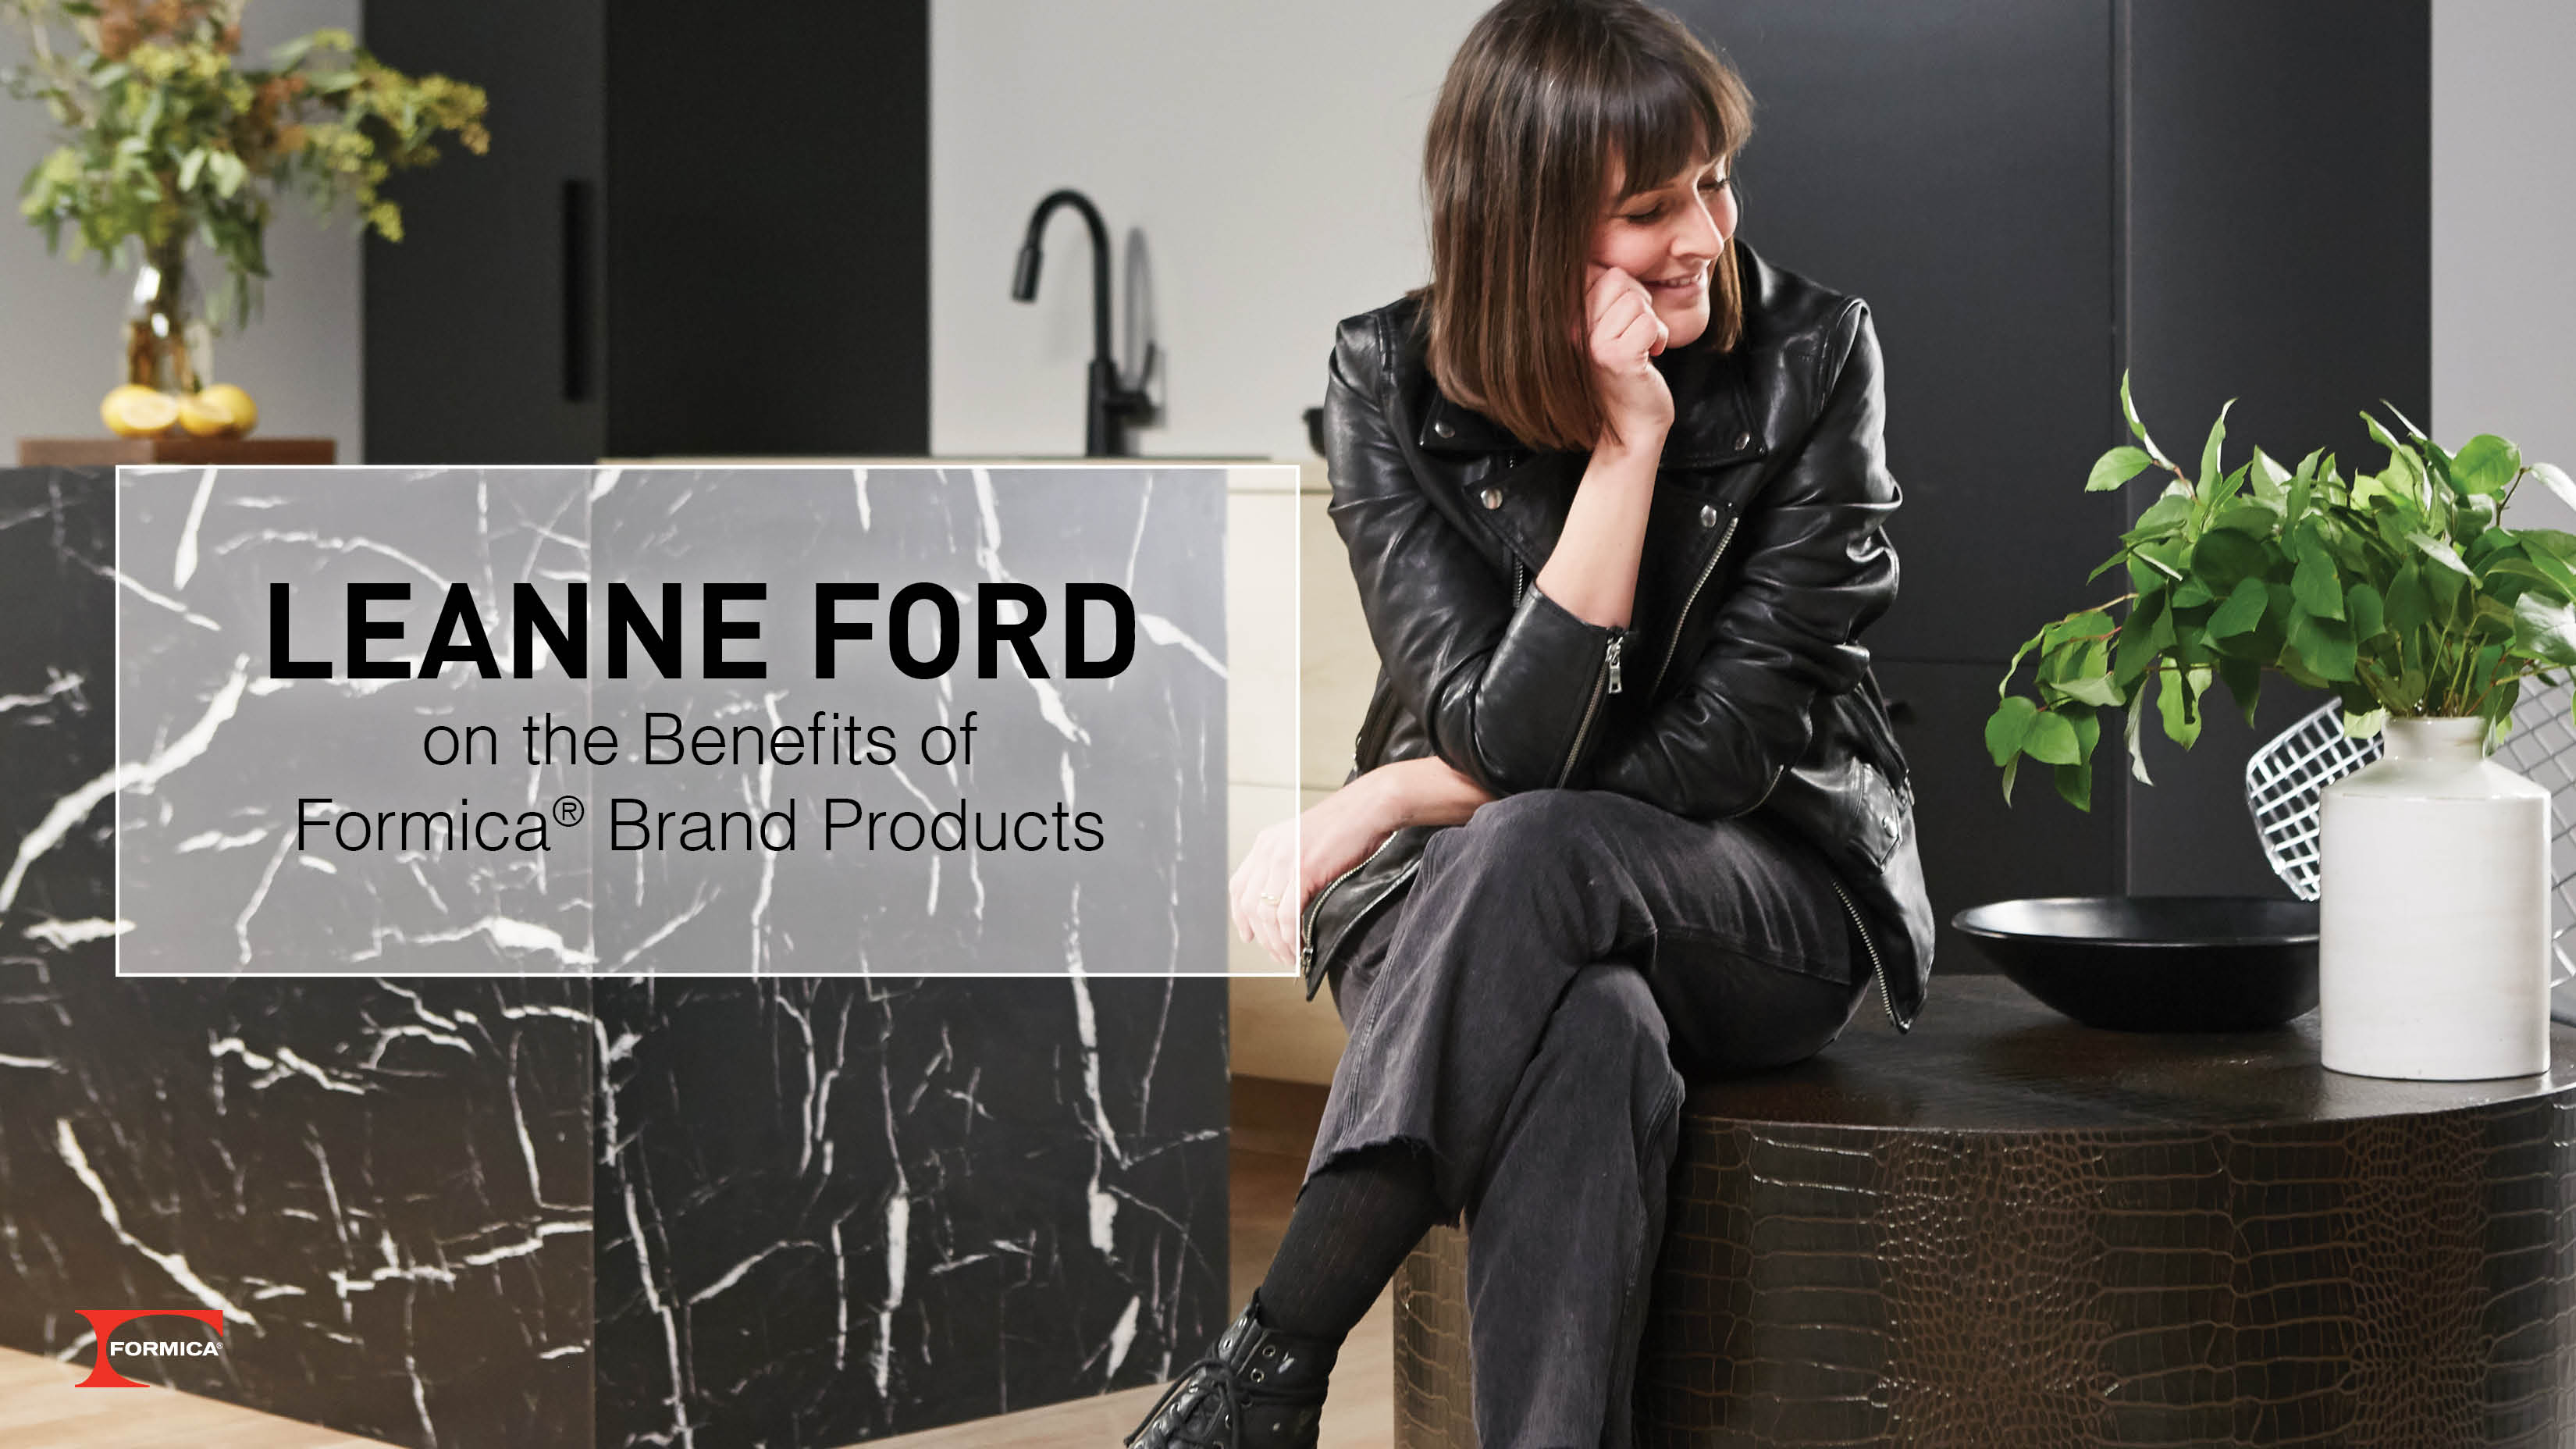 Leanne Ford on the Benefits of Formica Brand Products